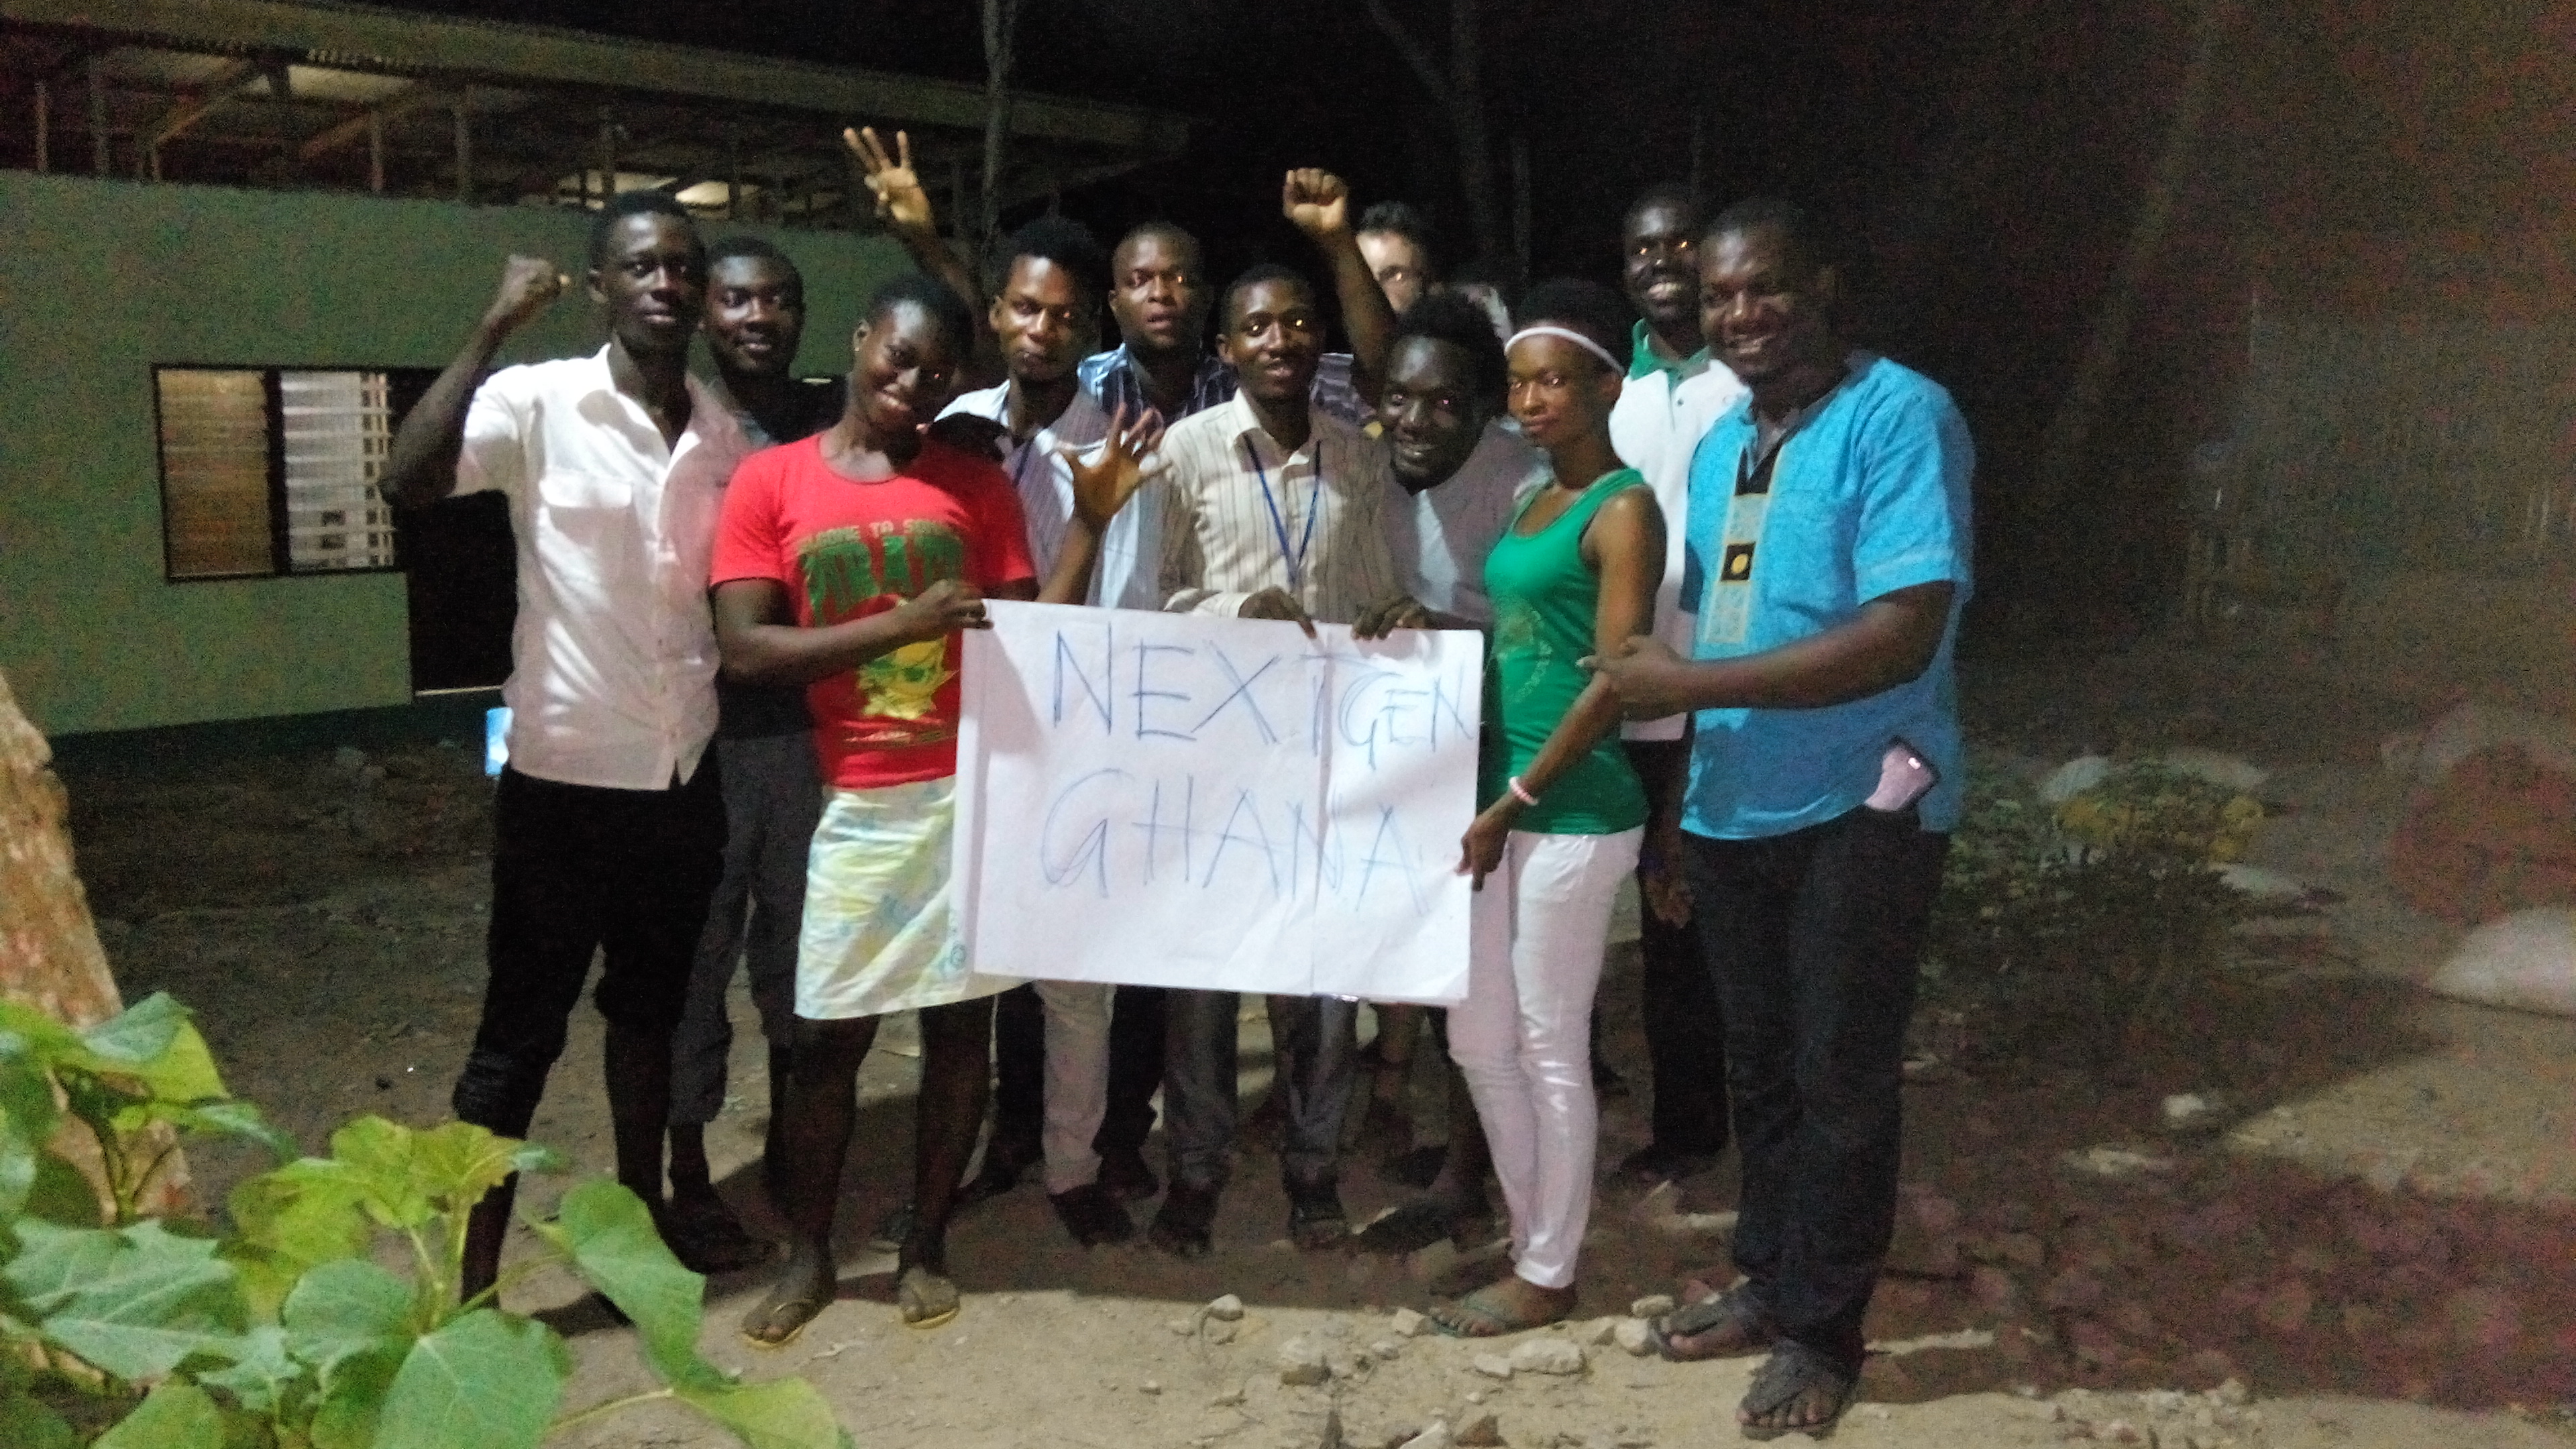 NEXTGEN – YOUTH ASSOCIATION OF THE ECOVILLAGE MOVEMENT ELECTS EXECUTIVES TO GEN COUNCIL